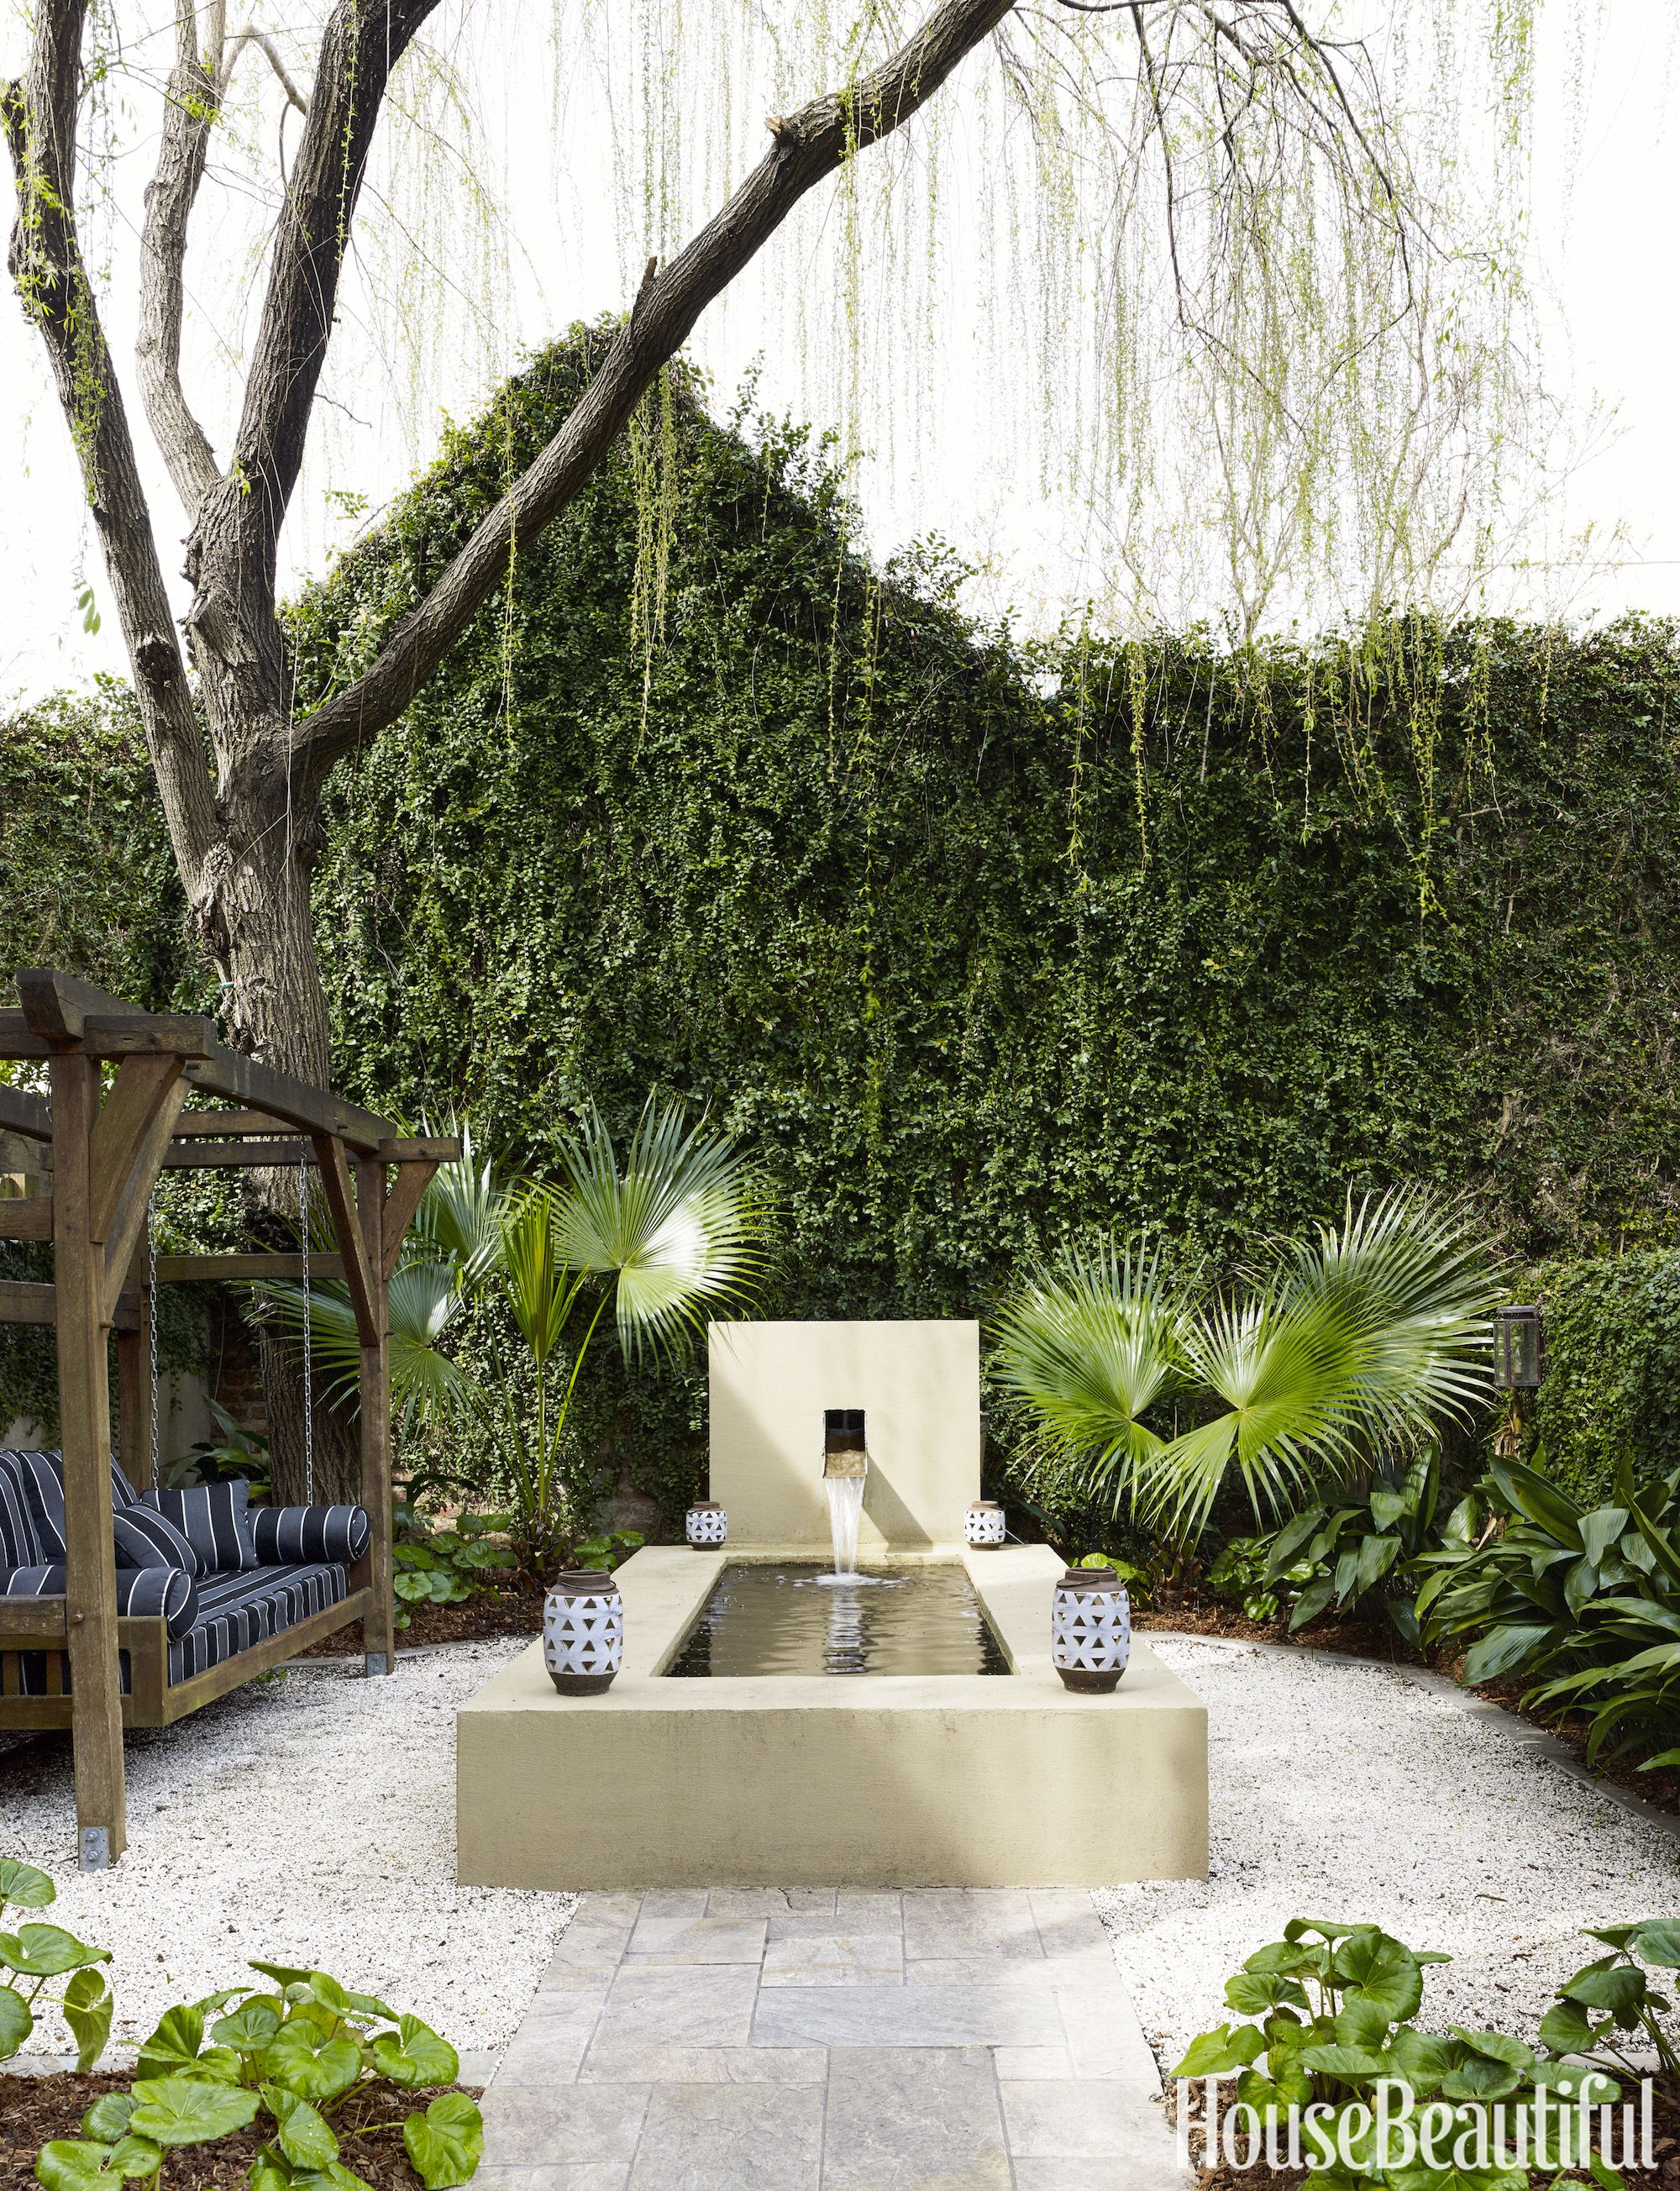 53 beautiful landscaping ideas best backyard landscape design tips rh housebeautiful com